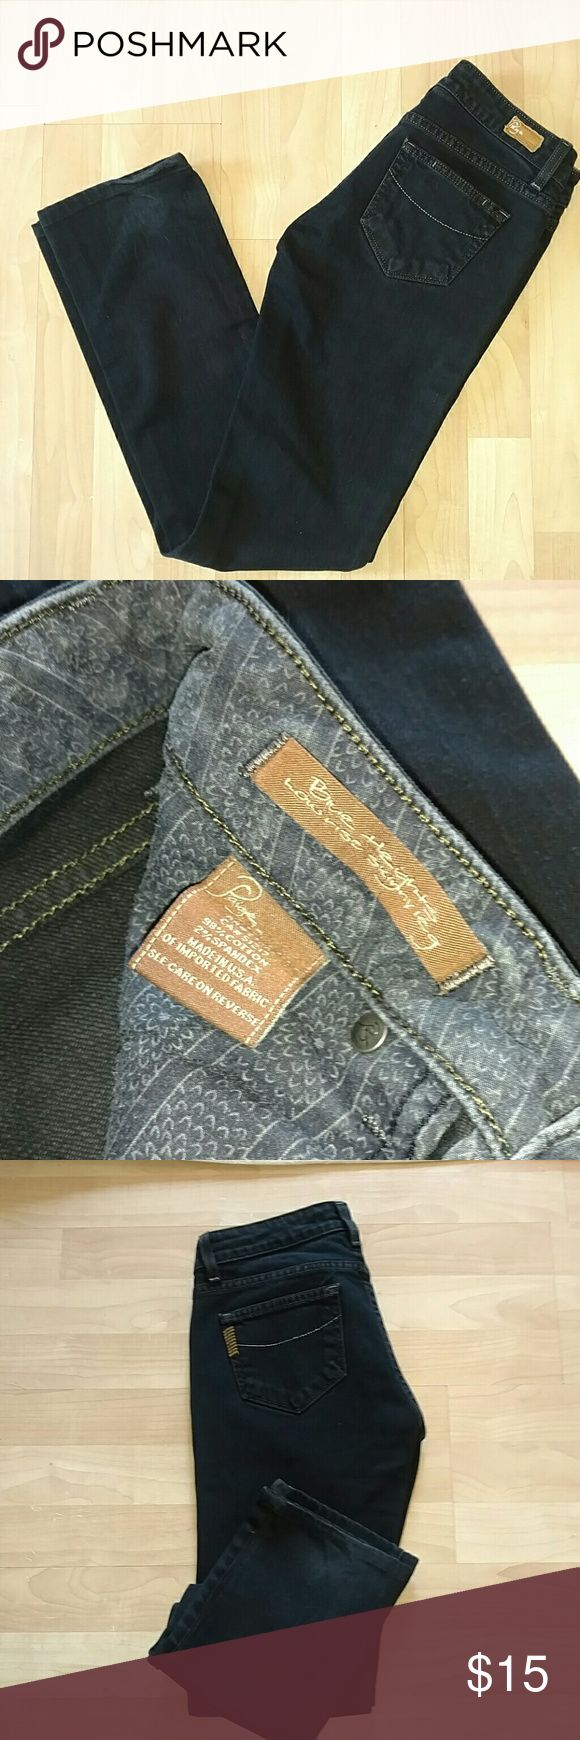 Paige premium denim 'Blue Heights' low rise skinny Like new. Great color. More like a very dark grey to black than a dark blue. Made in the USA. Only worn a few times. Described as 'skinny leg' but more straight. Paige Jeans Jeans Skinny